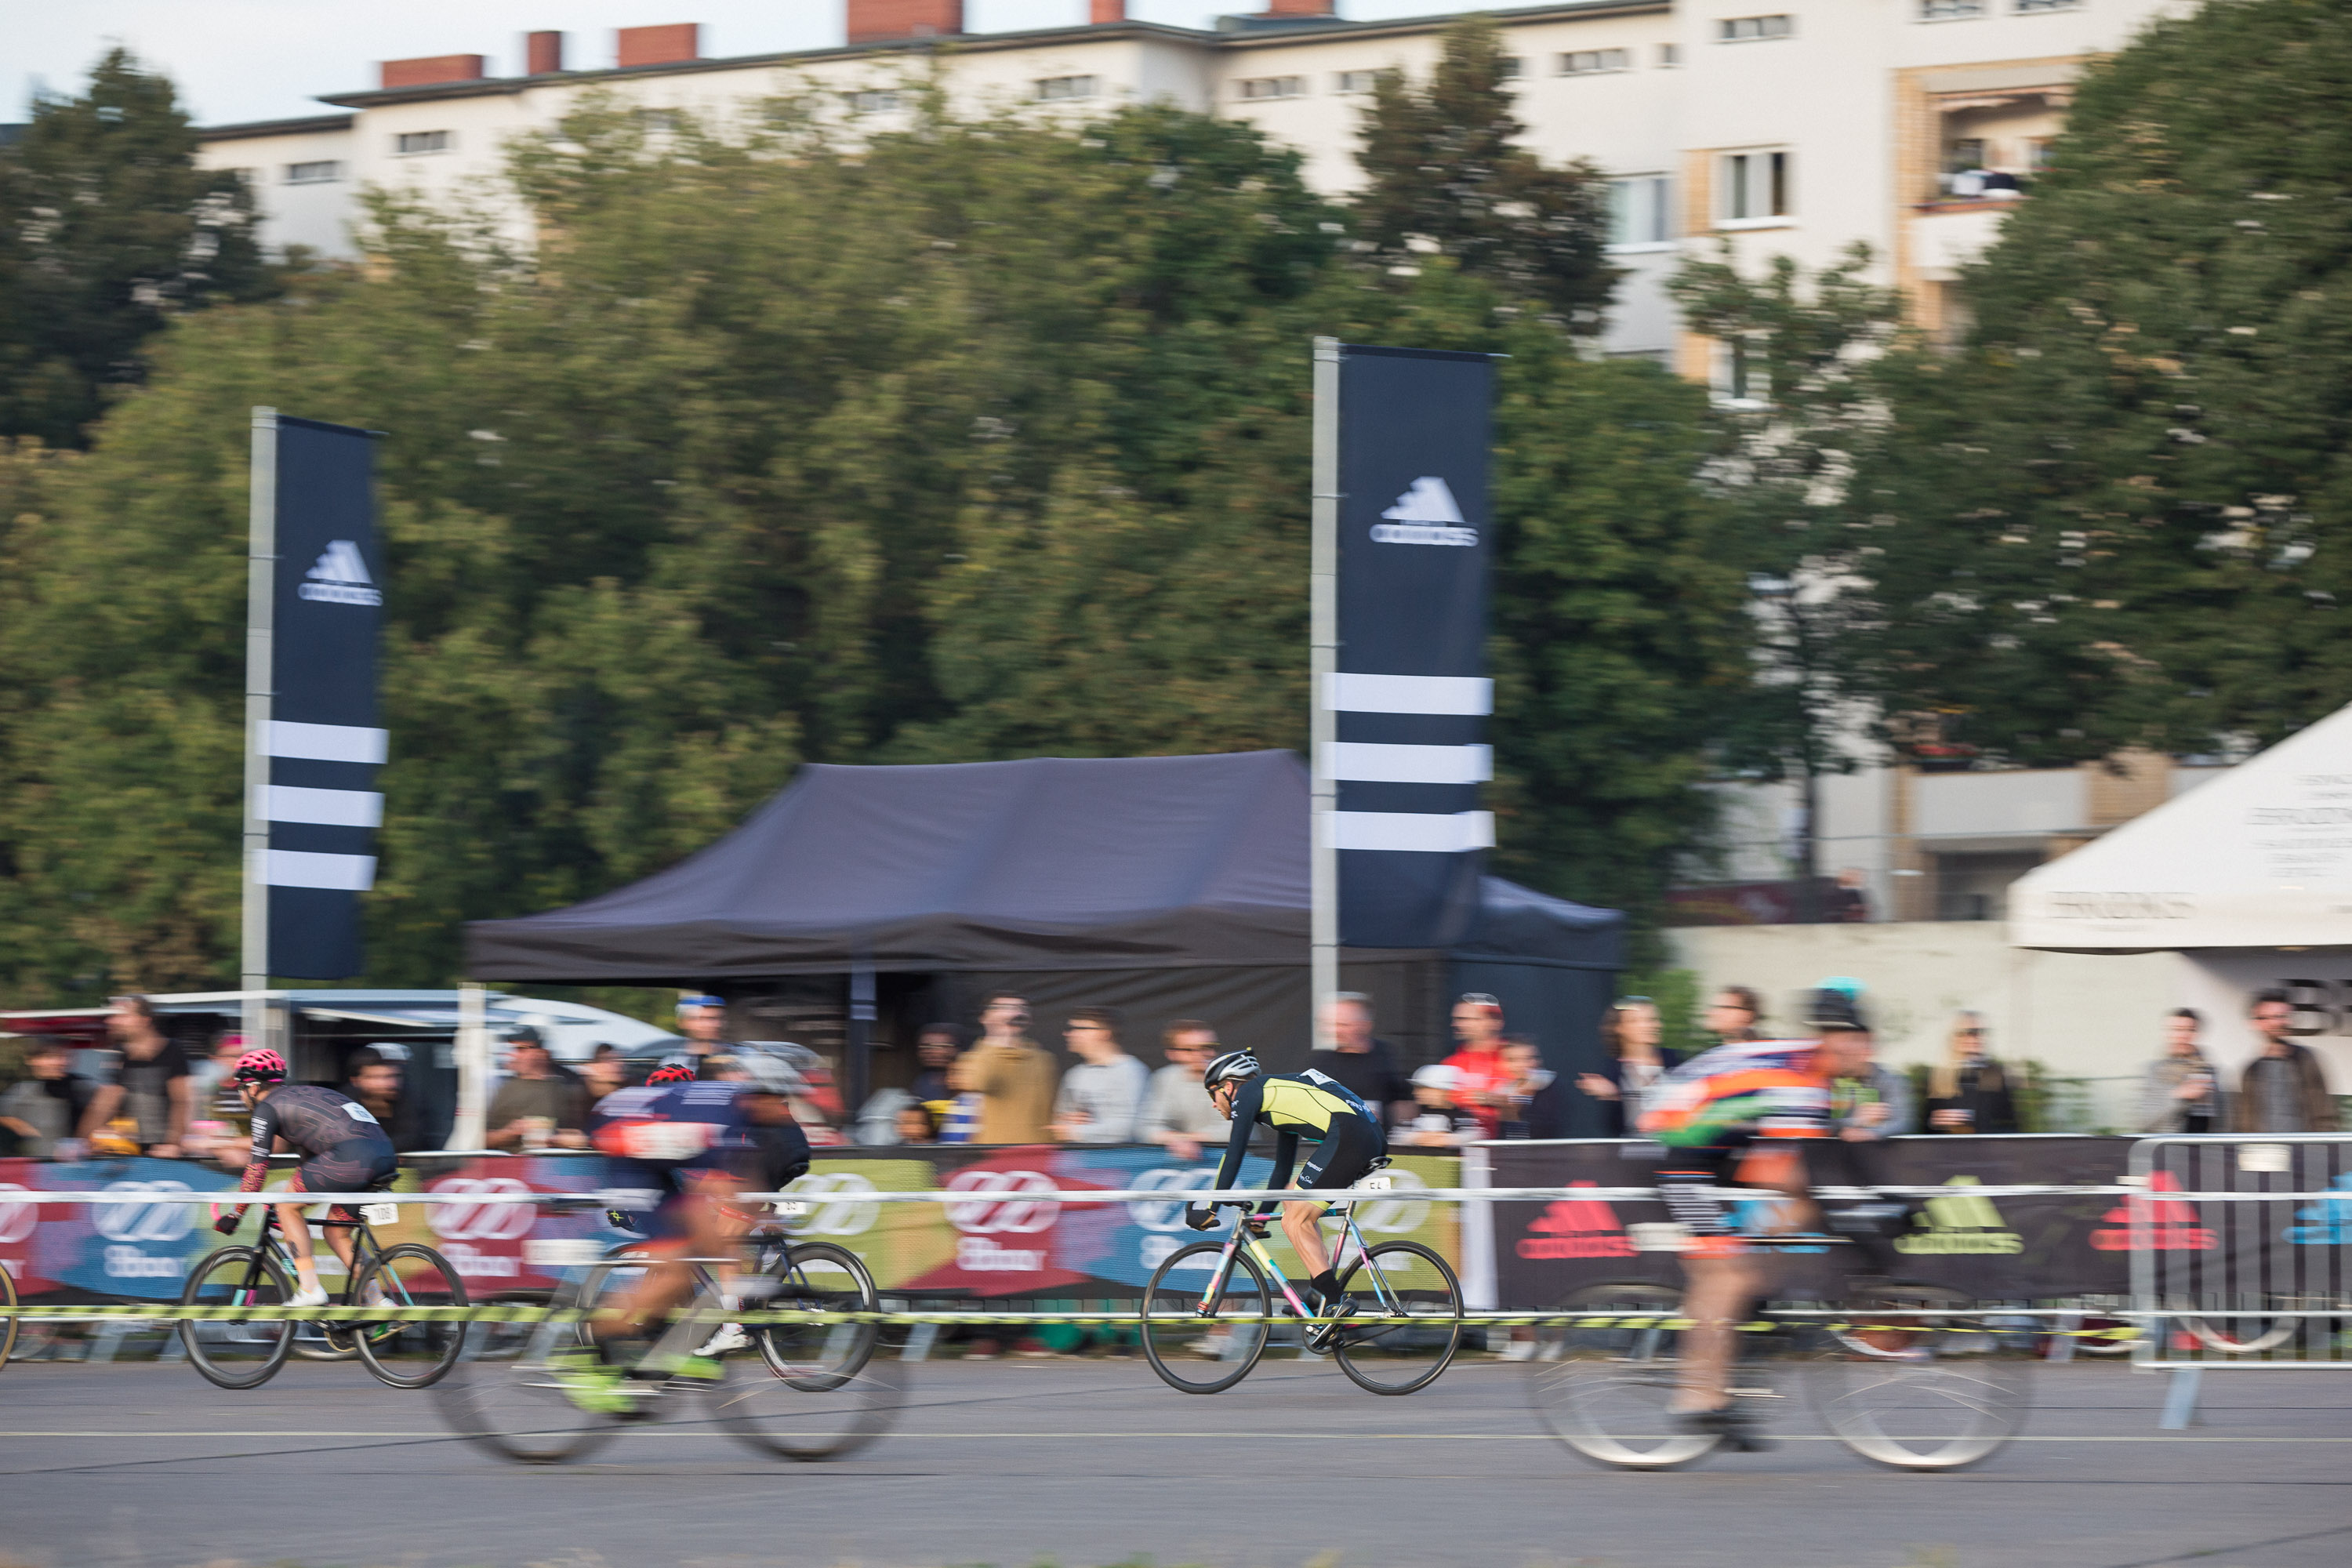 stefanhaehnel 8barcrit 165 - 8bar Crit 2017 - Germany's biggest fixed gear crit is back!!!